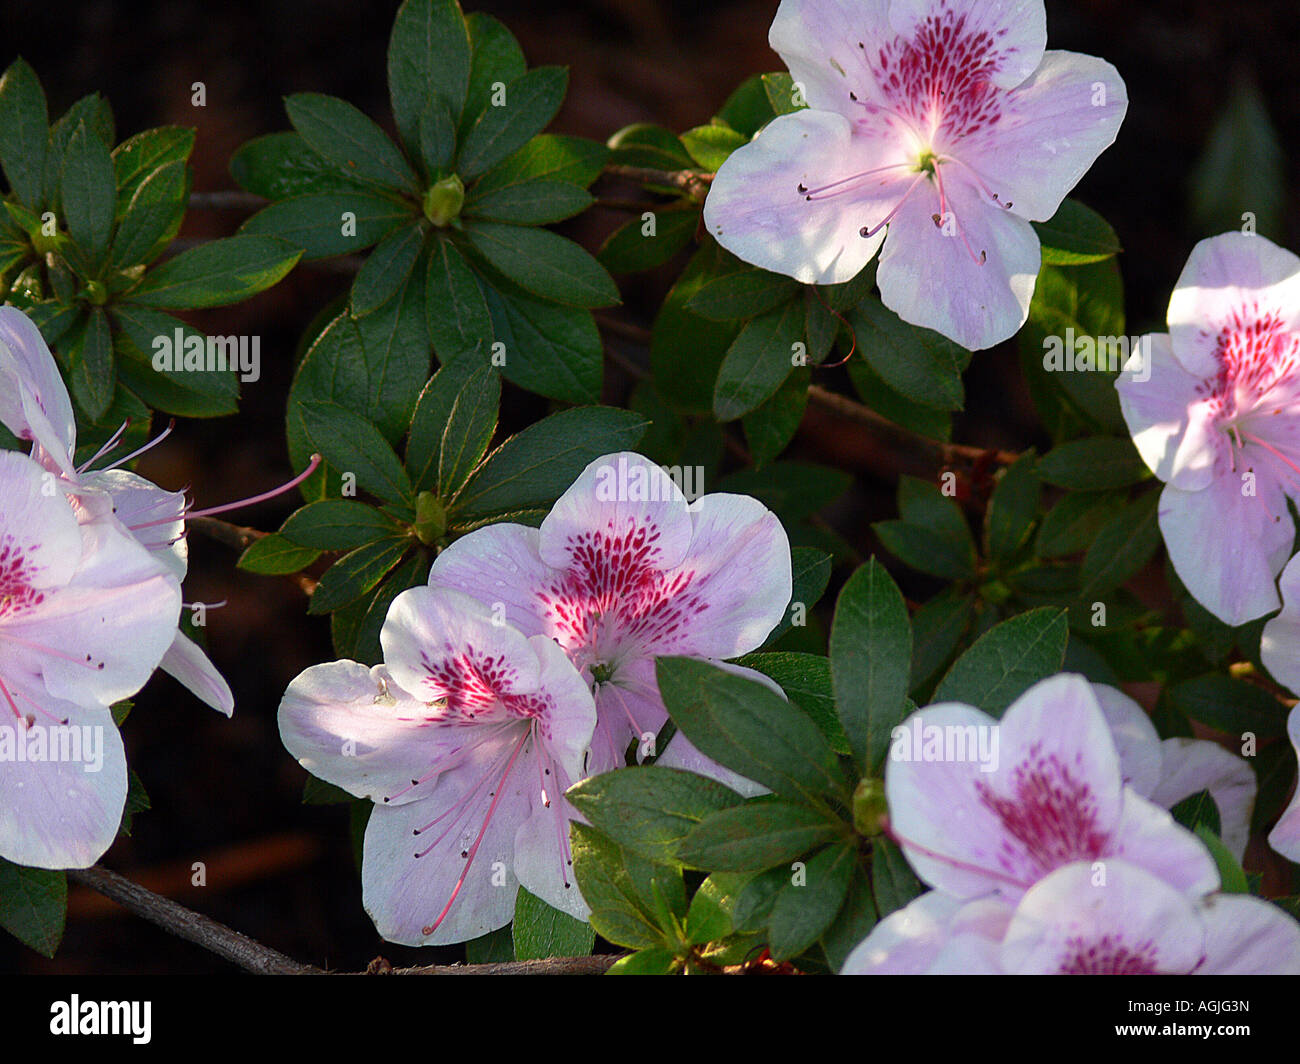 Flowers that bloom in the winter - Pink And Purple Flowers Bloom After Late Winter Rains In Northern California Stock Photo